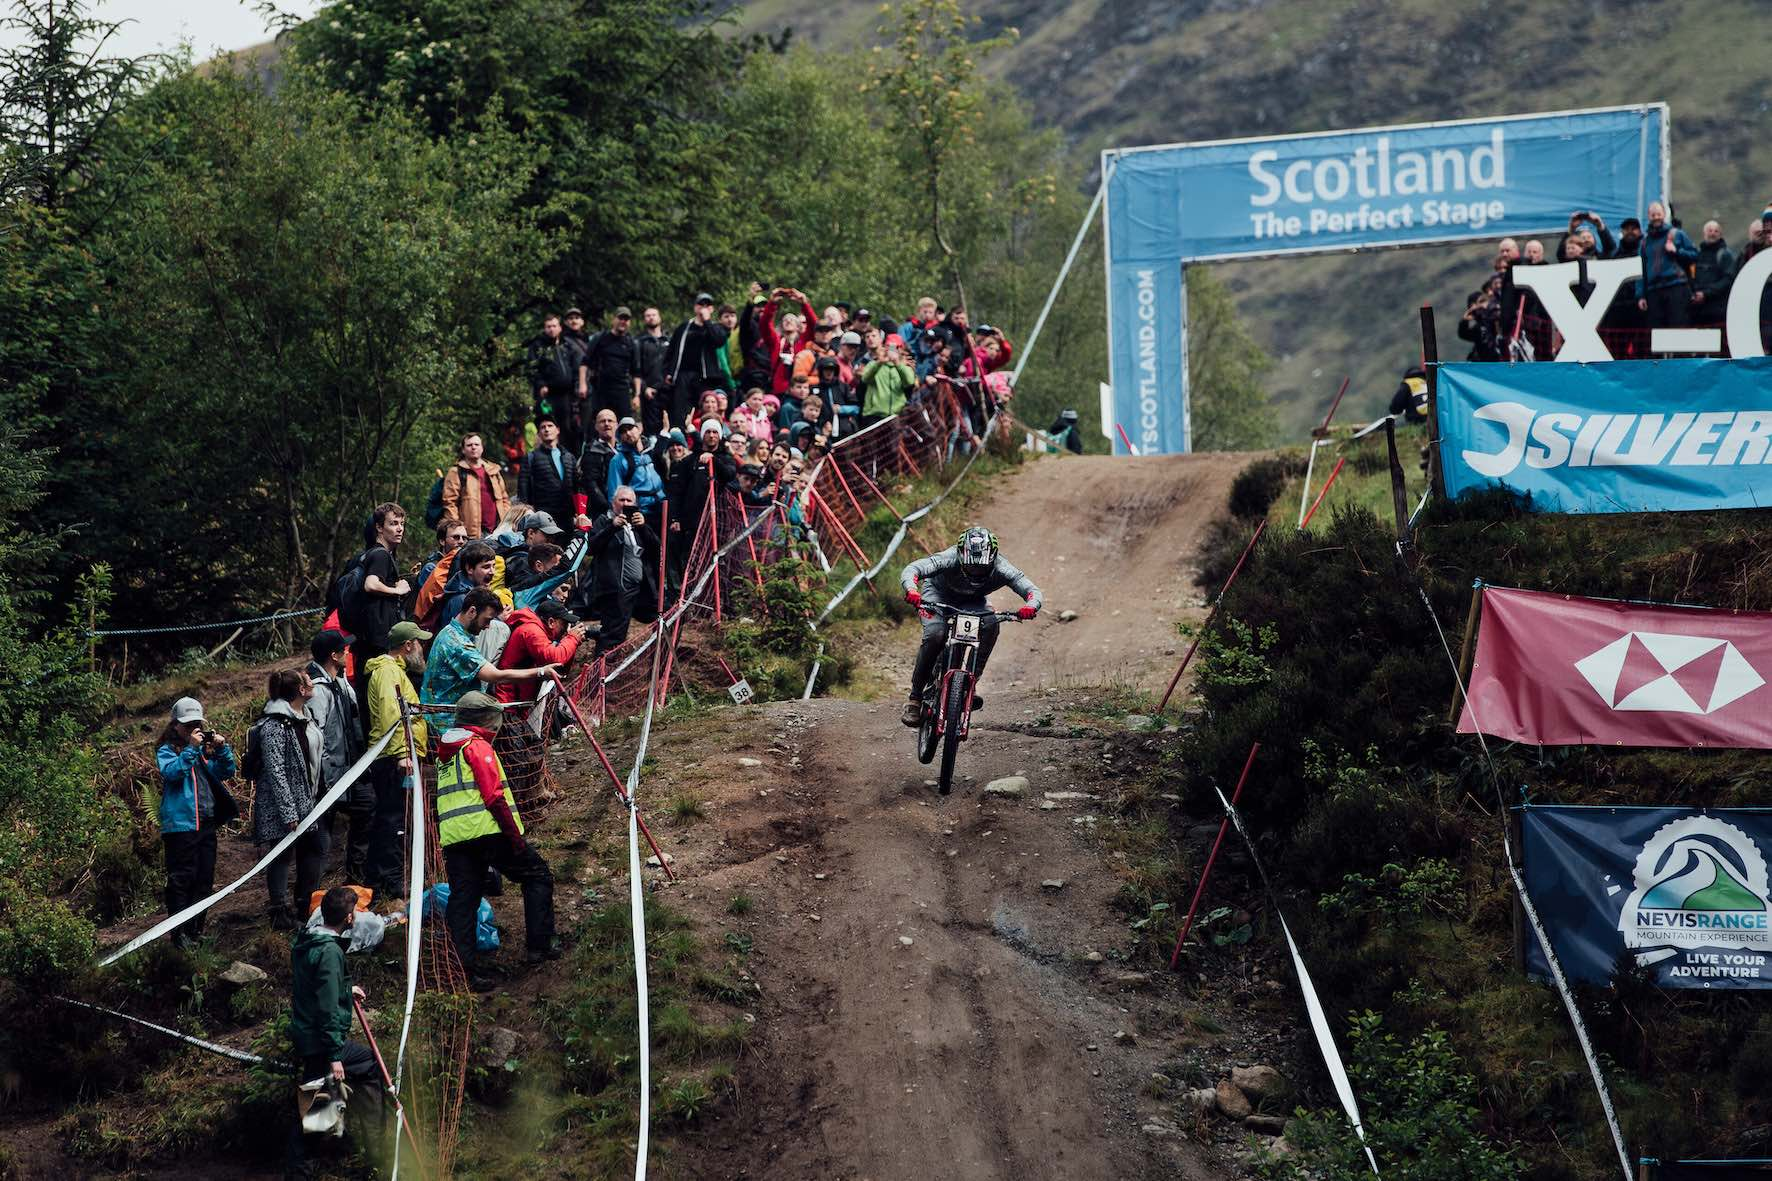 Amaury Pierron winning the 2019 Downhill MTB World Cup at Fort William